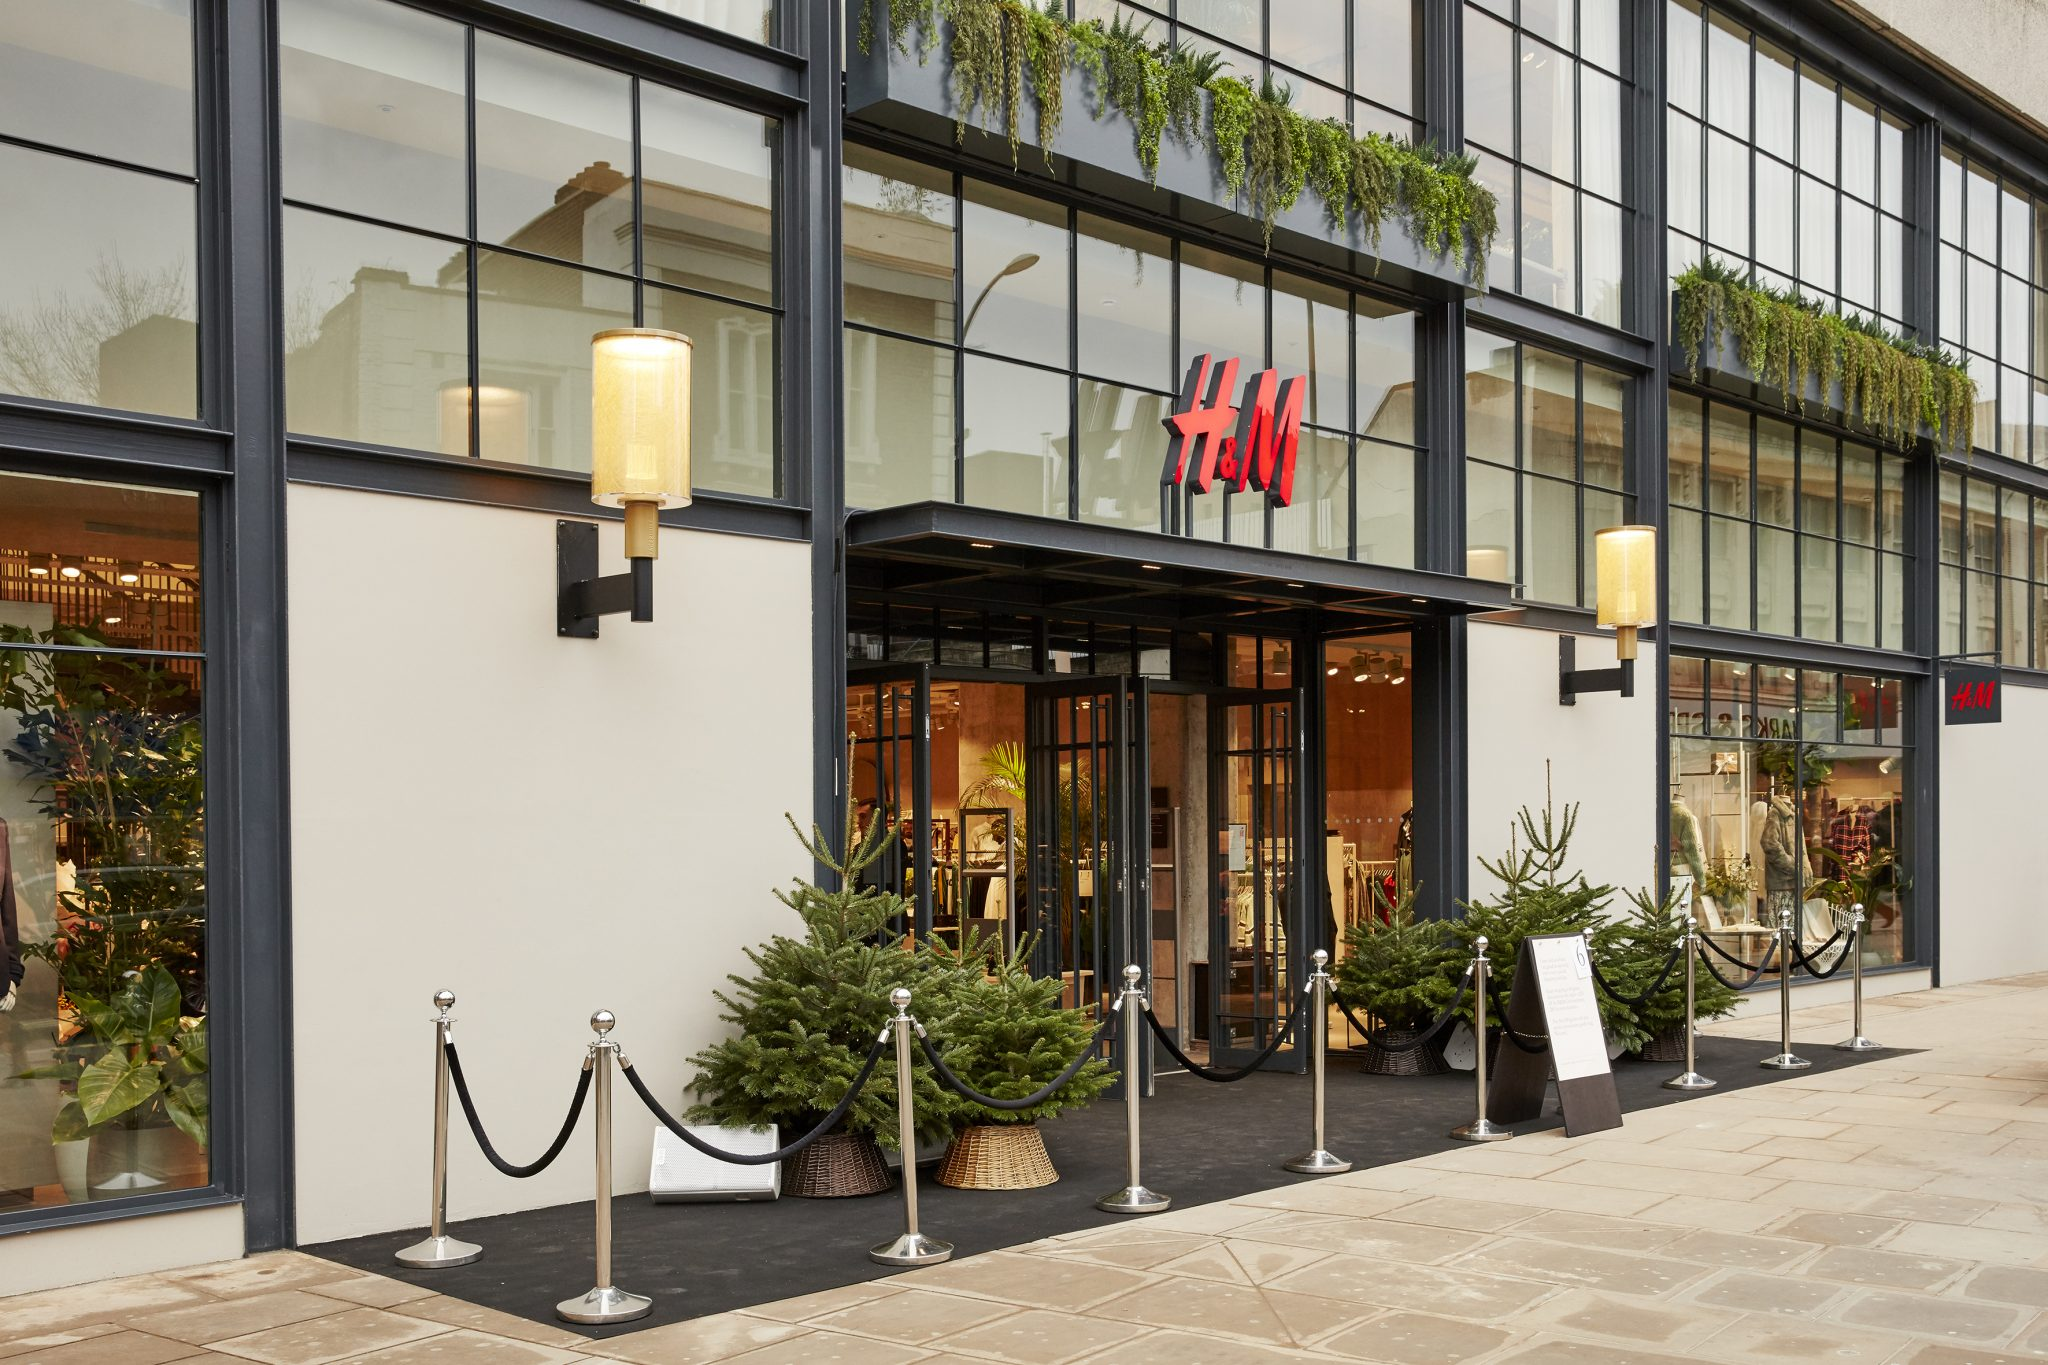 H&M is aiming to encourage eco-conscious shopping